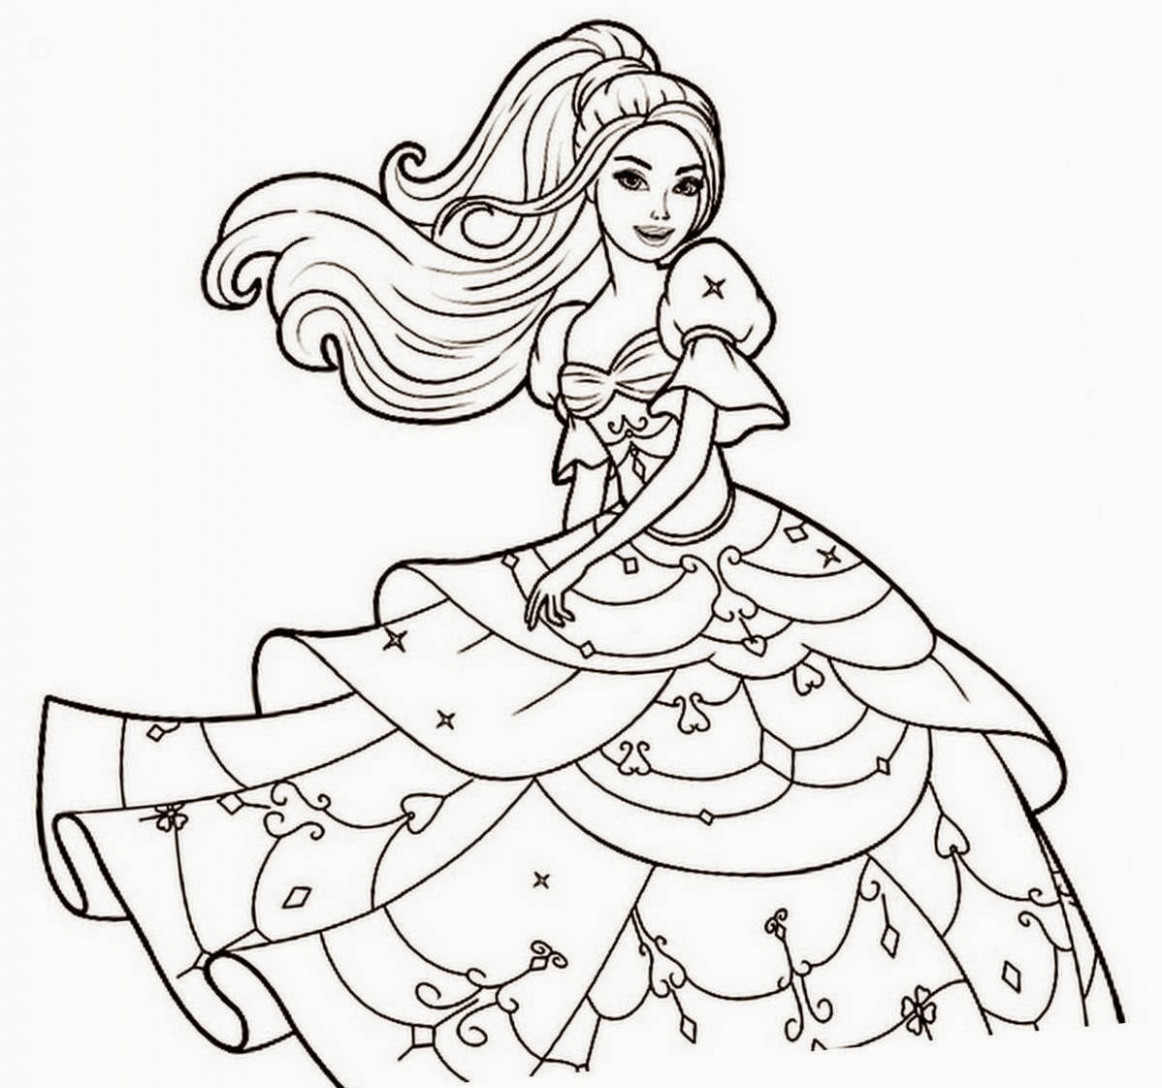 Barbie Color BookProject Awesomebarbie Colouring Book – All About Of ..